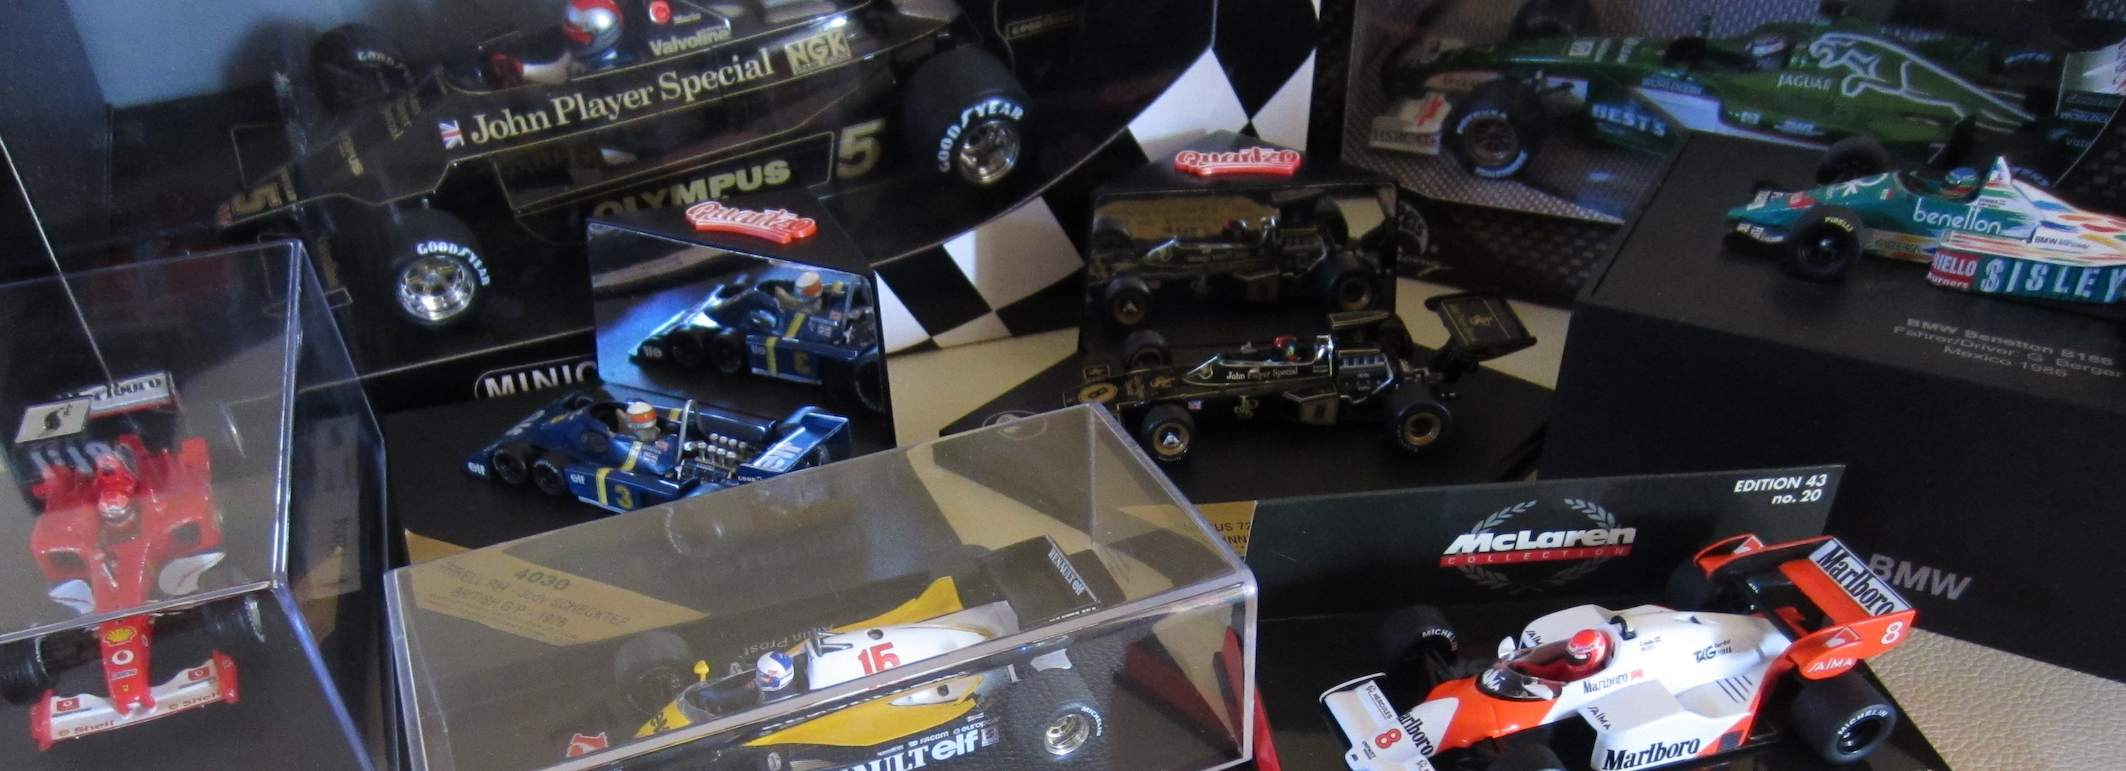 Guide To F1 Model Cars F1 Nut Com